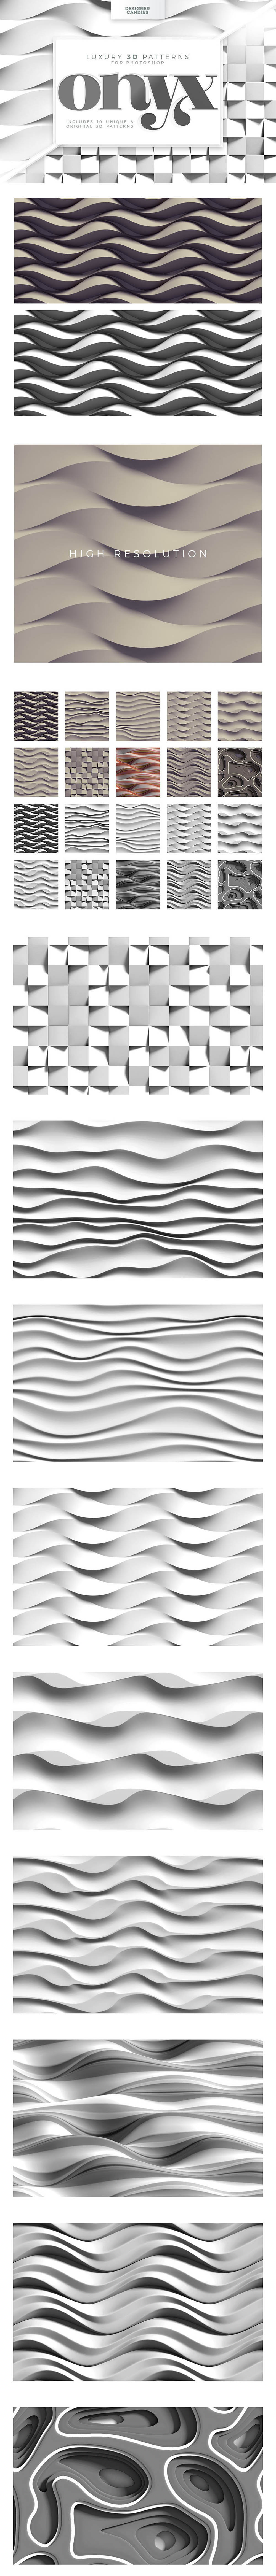 Textures & Patterns Collection